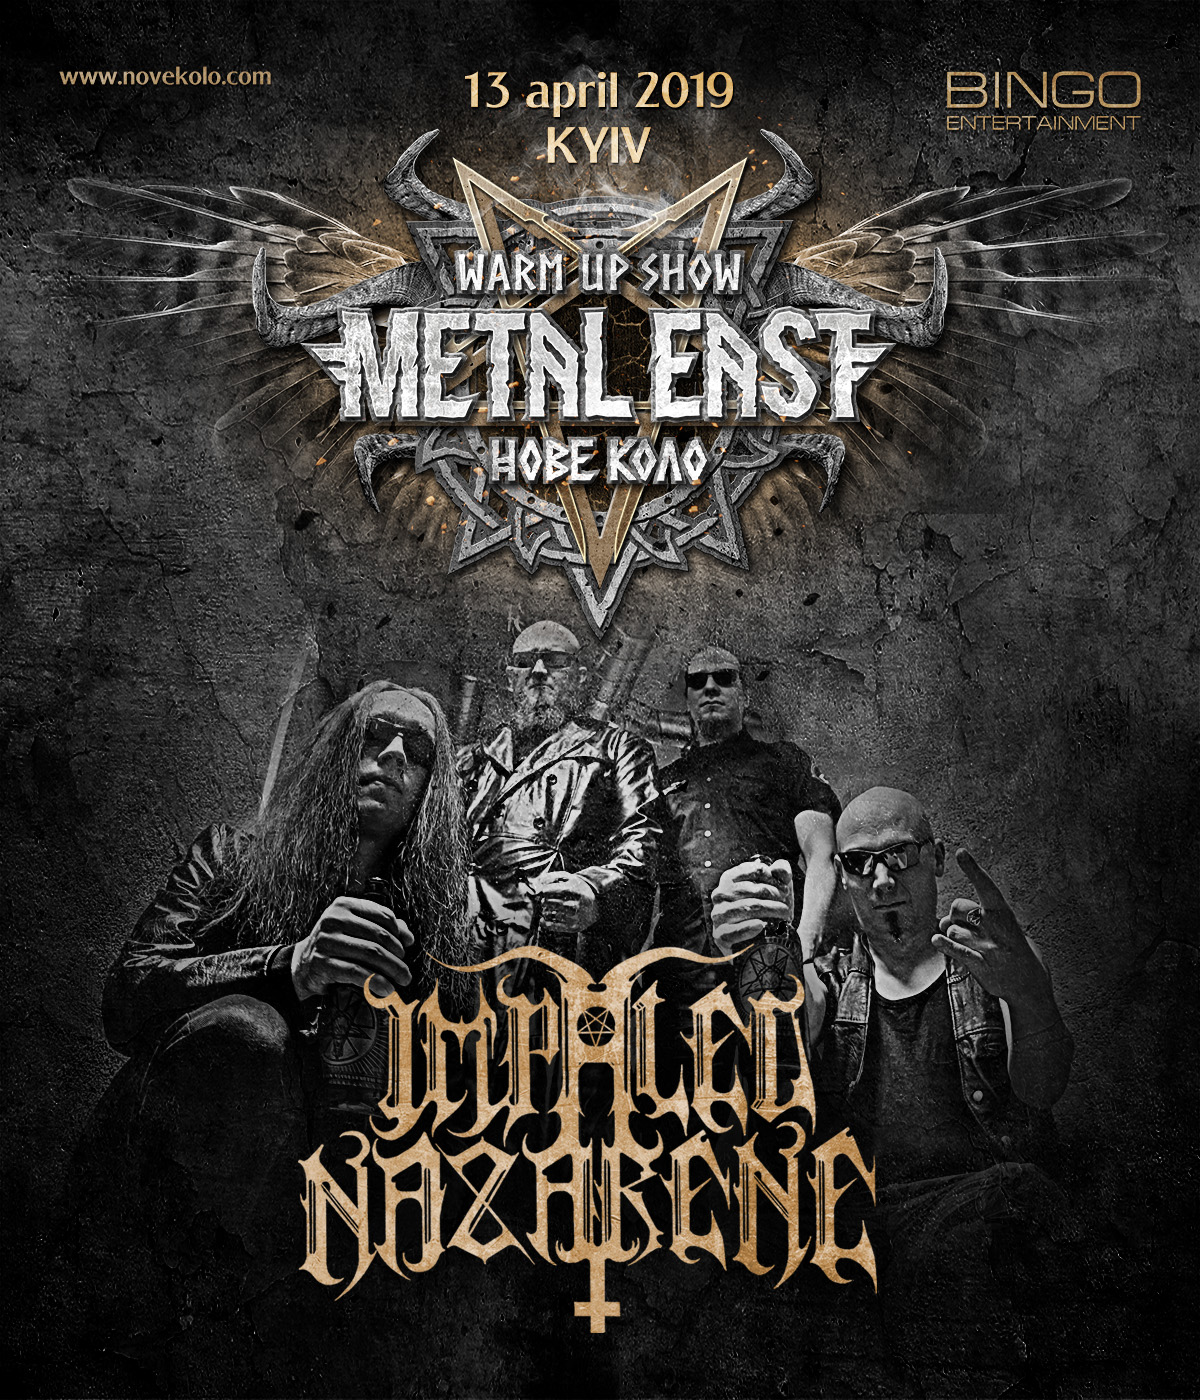 April 13th of 2019 IMPALED NAZARENE will be guests of Metal East Nove Kolo warm-up party in Bingo club, Kyiv, Ukraine